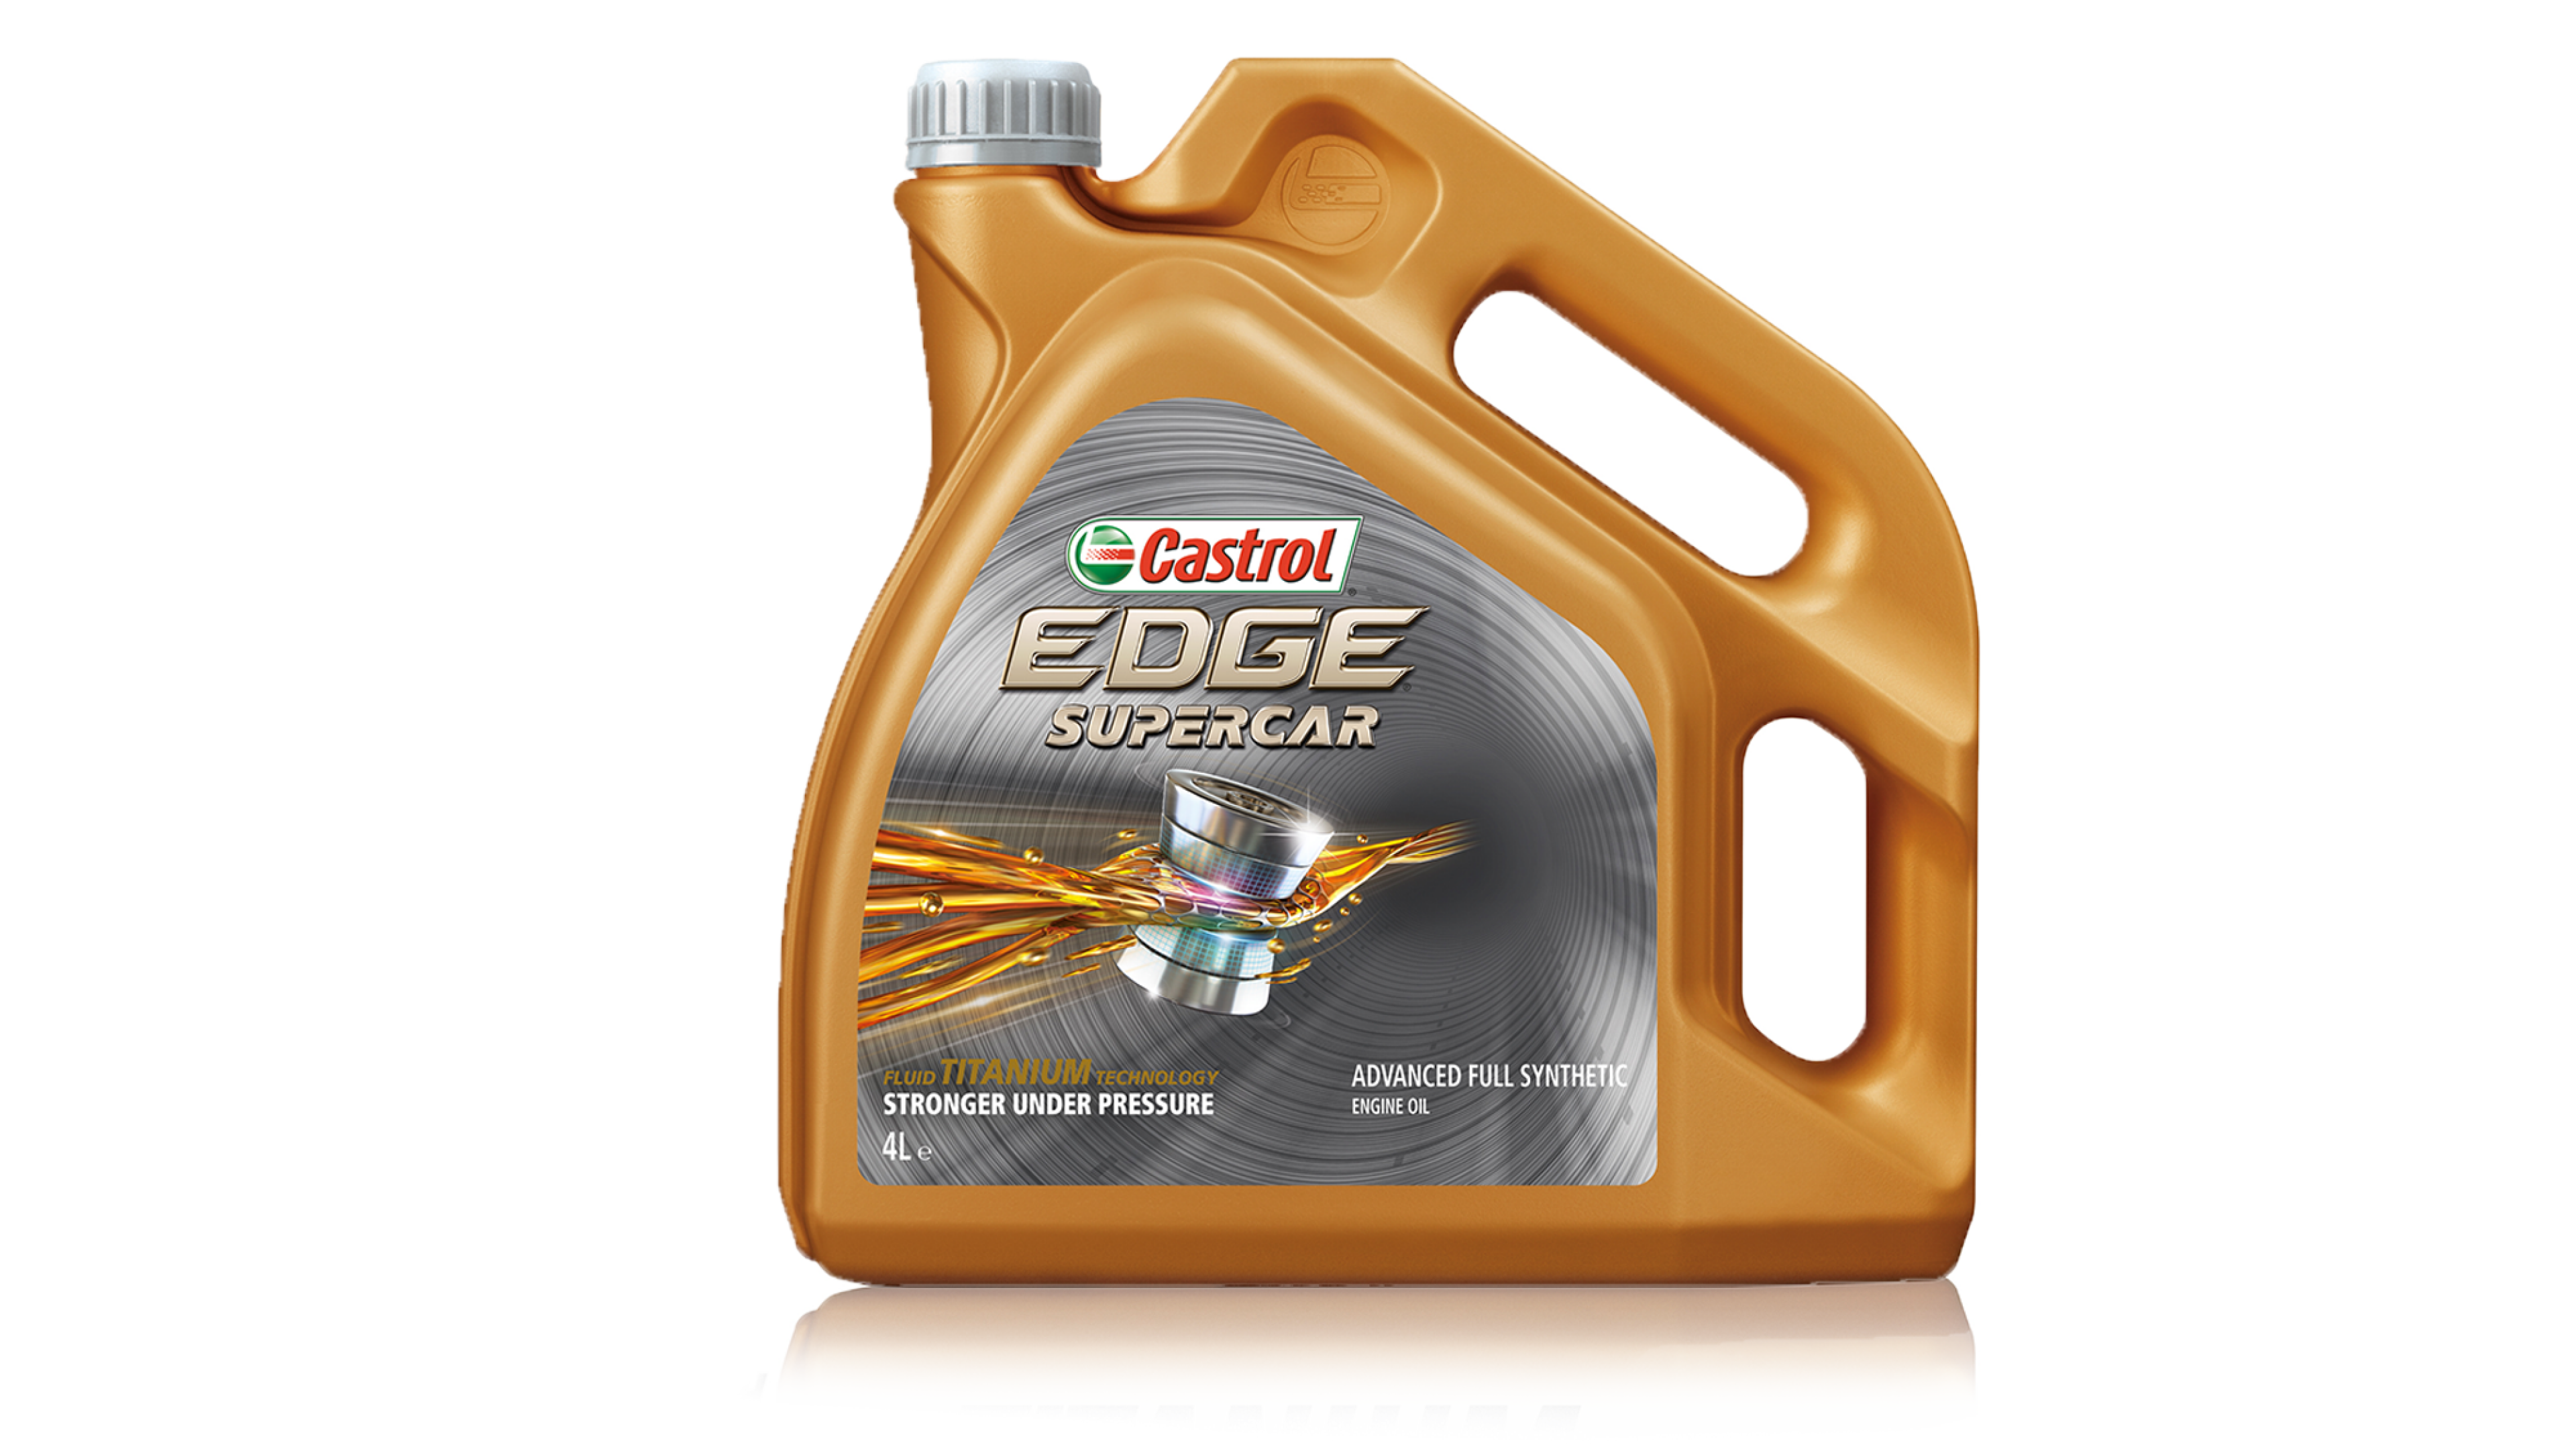 Castrol EDGE Supercar